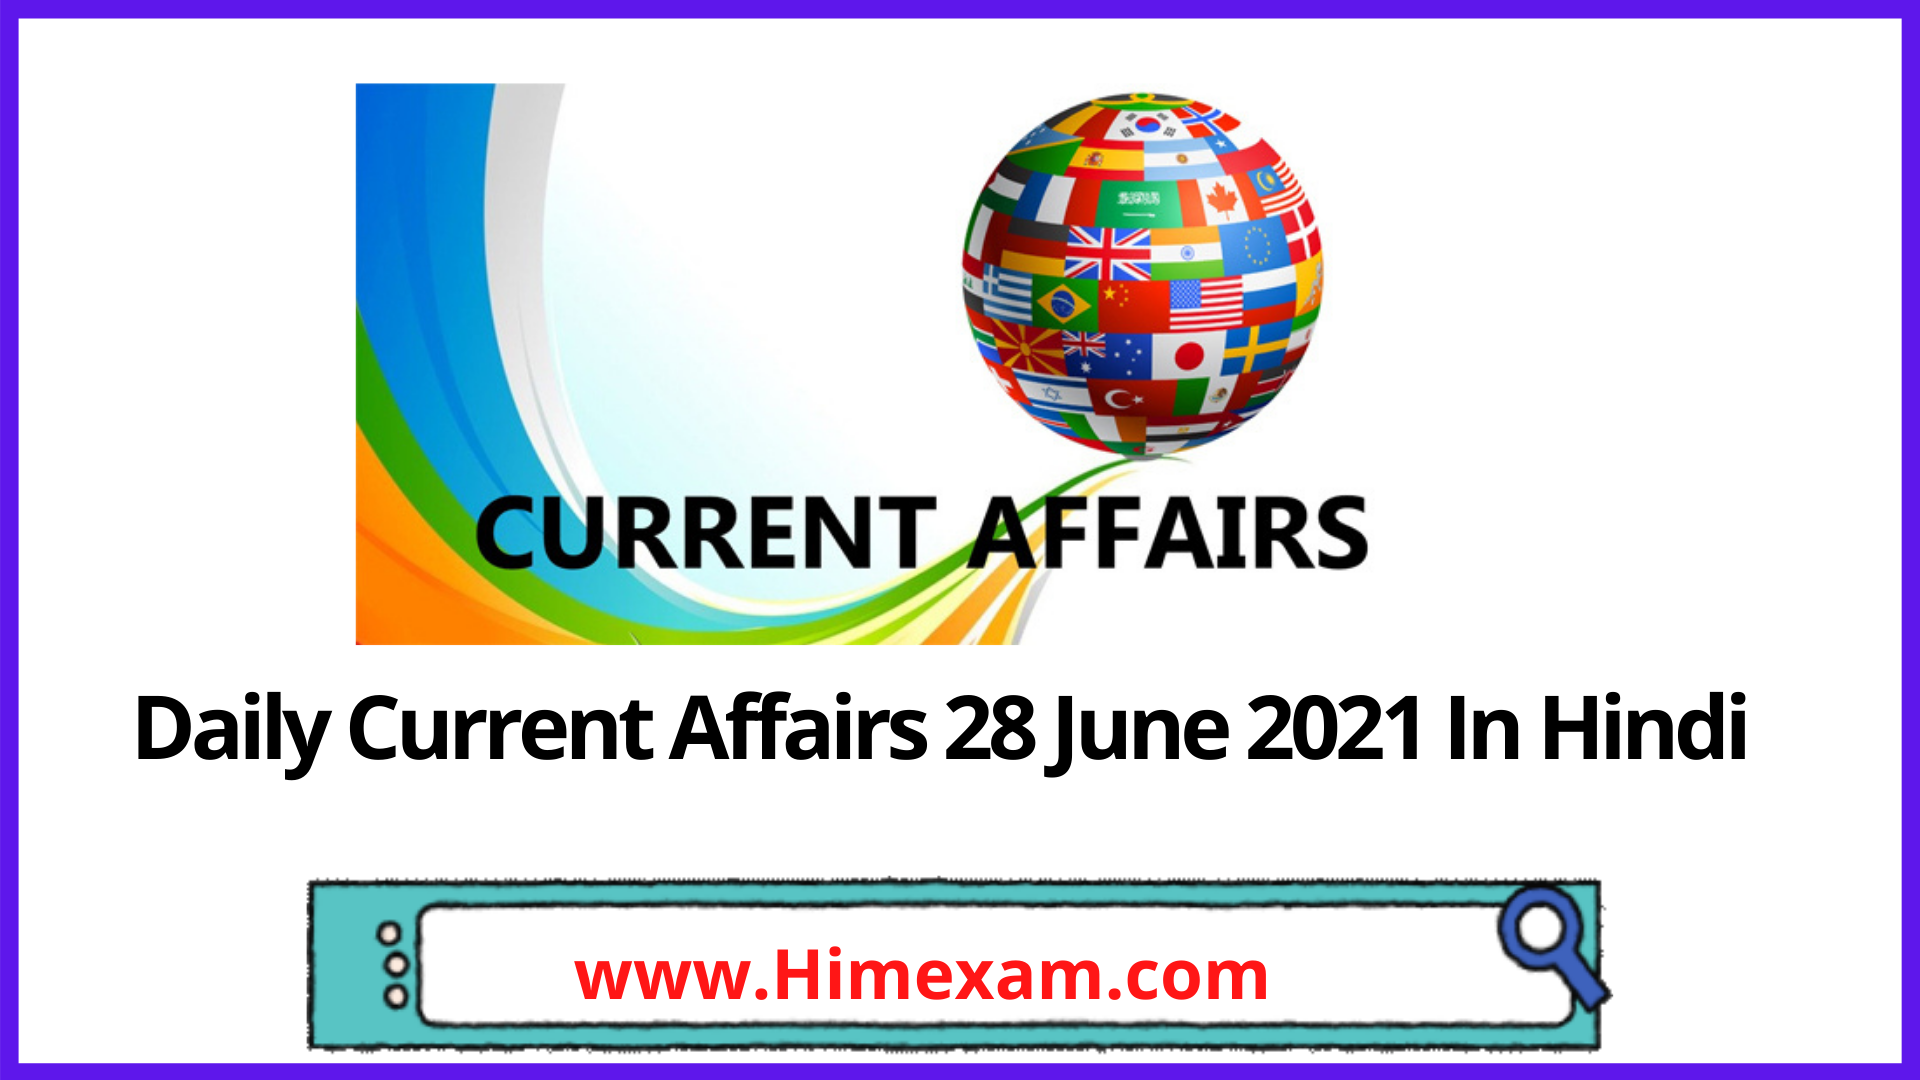 Daily Current Affairs 28 June 2021 In Hindi